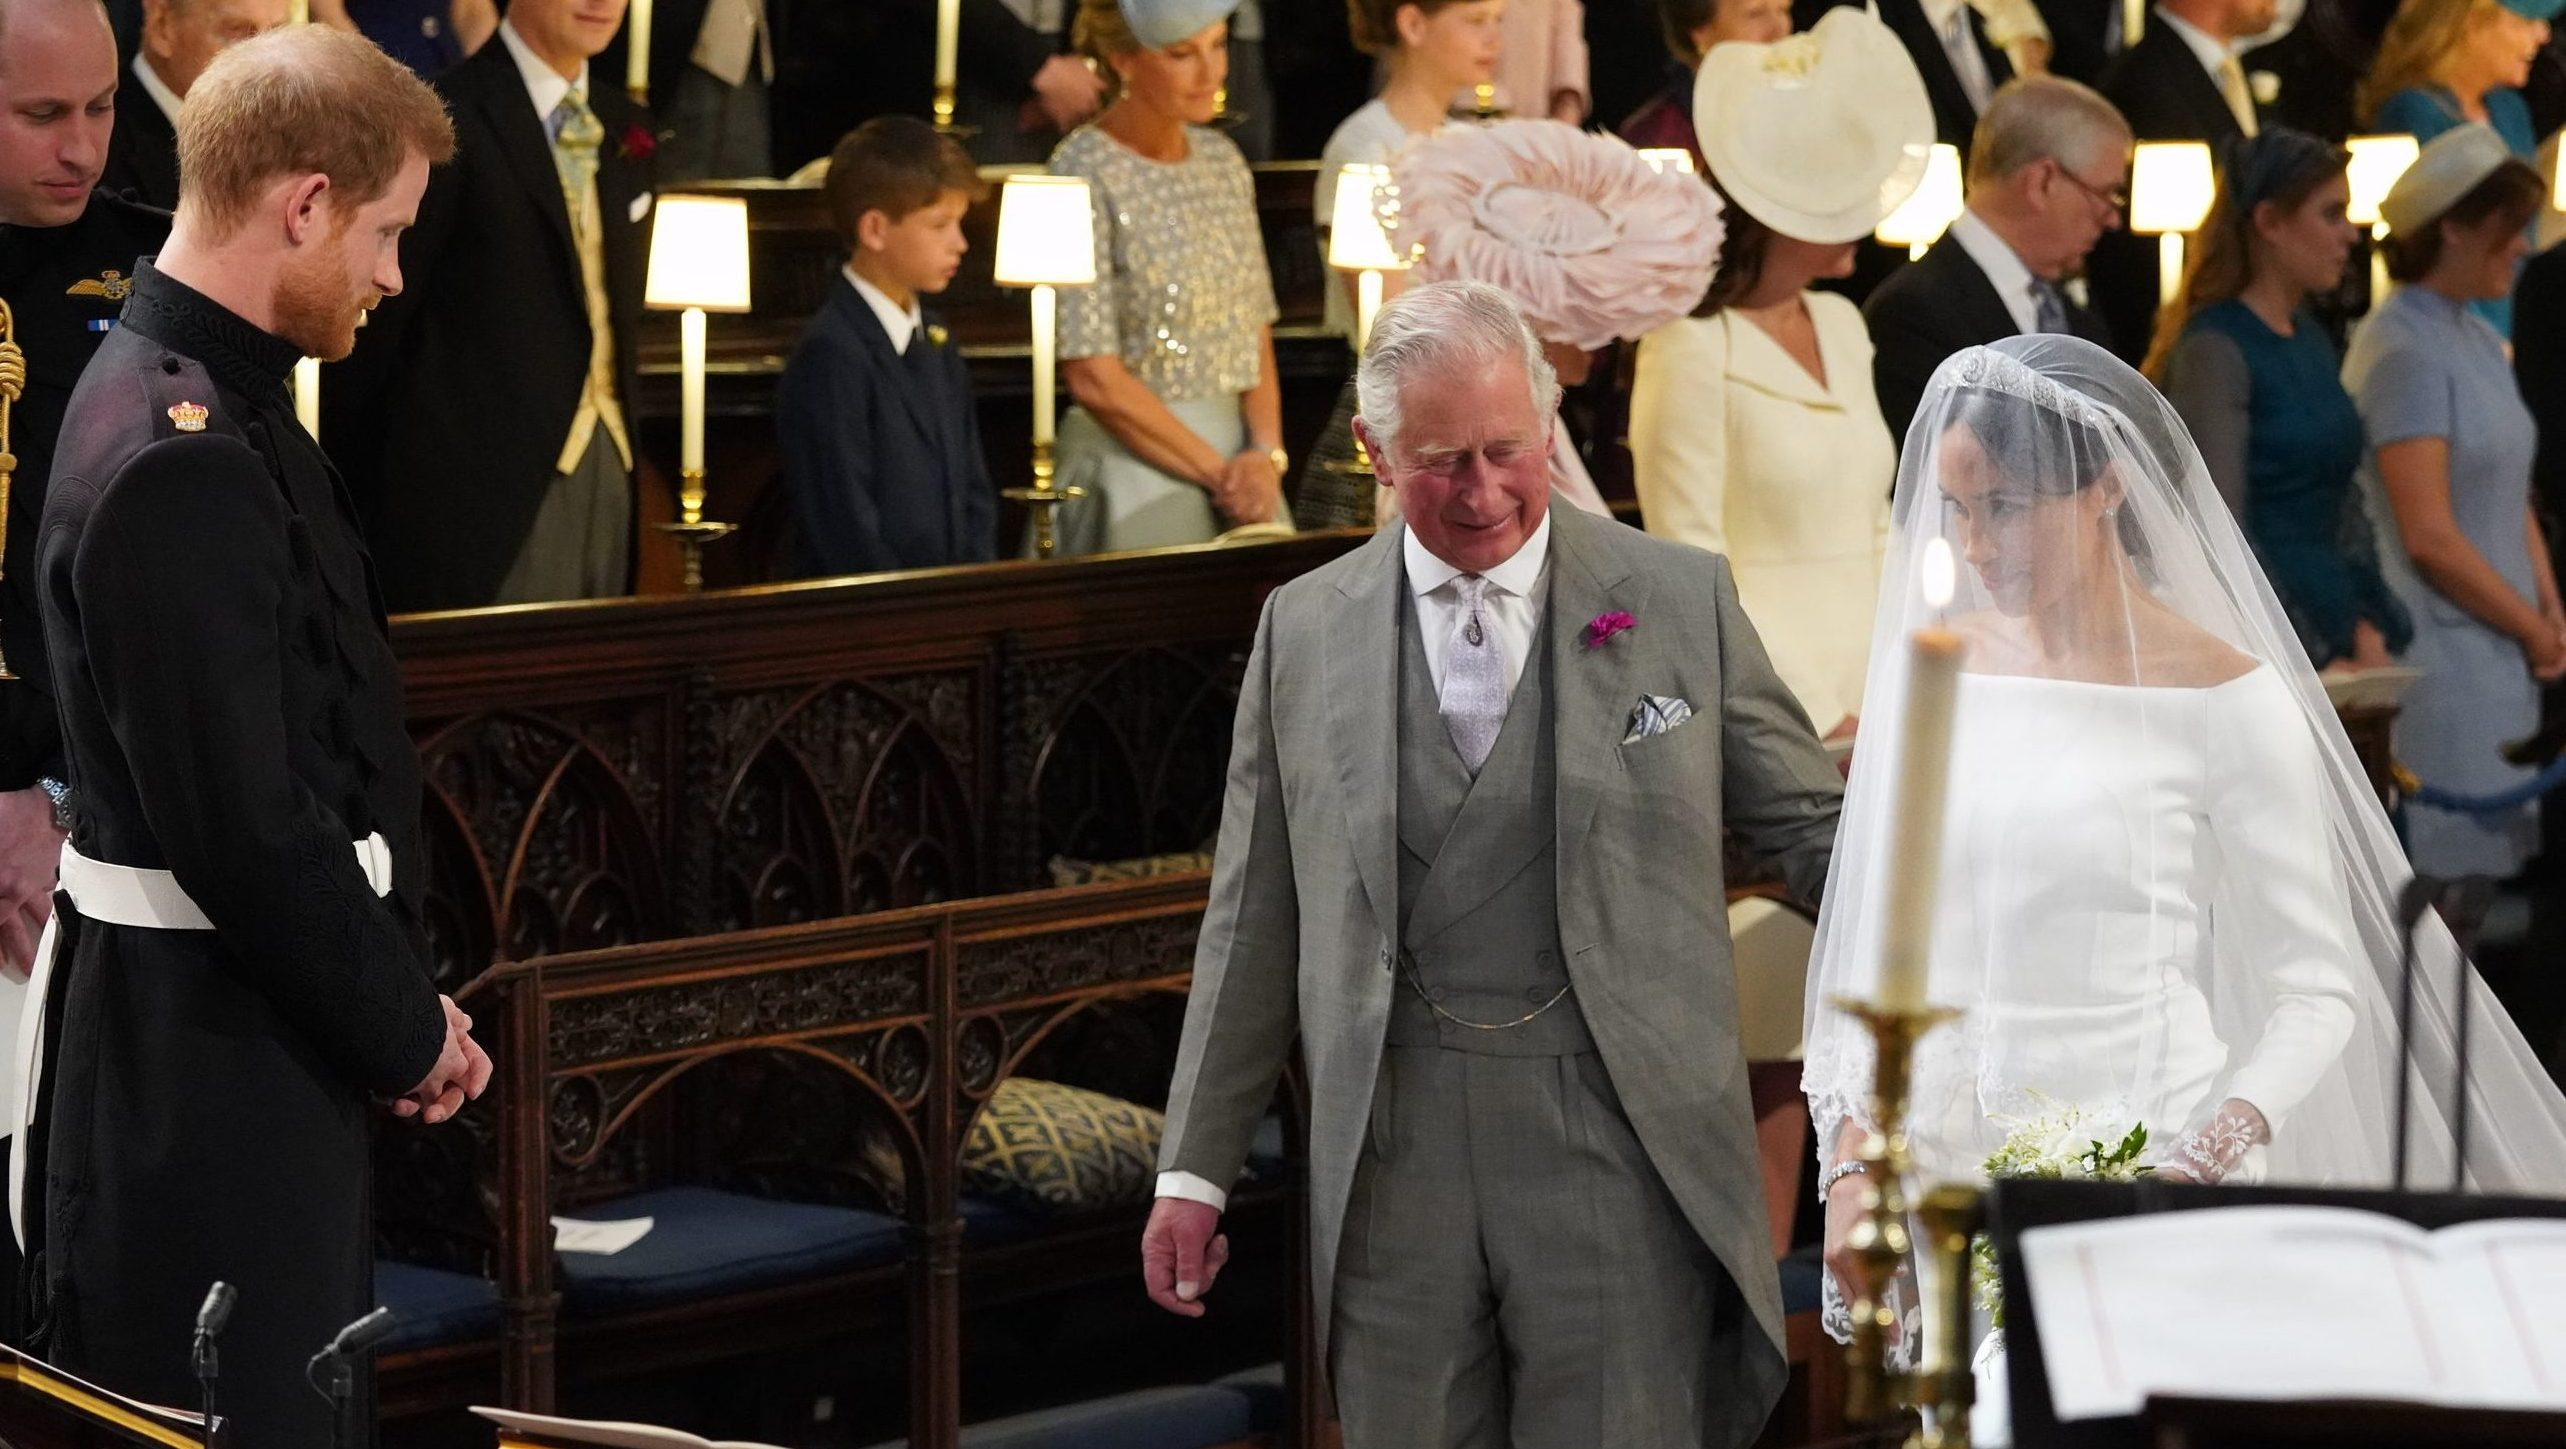 Prince Charles Walking Meghan Markle down the aisle